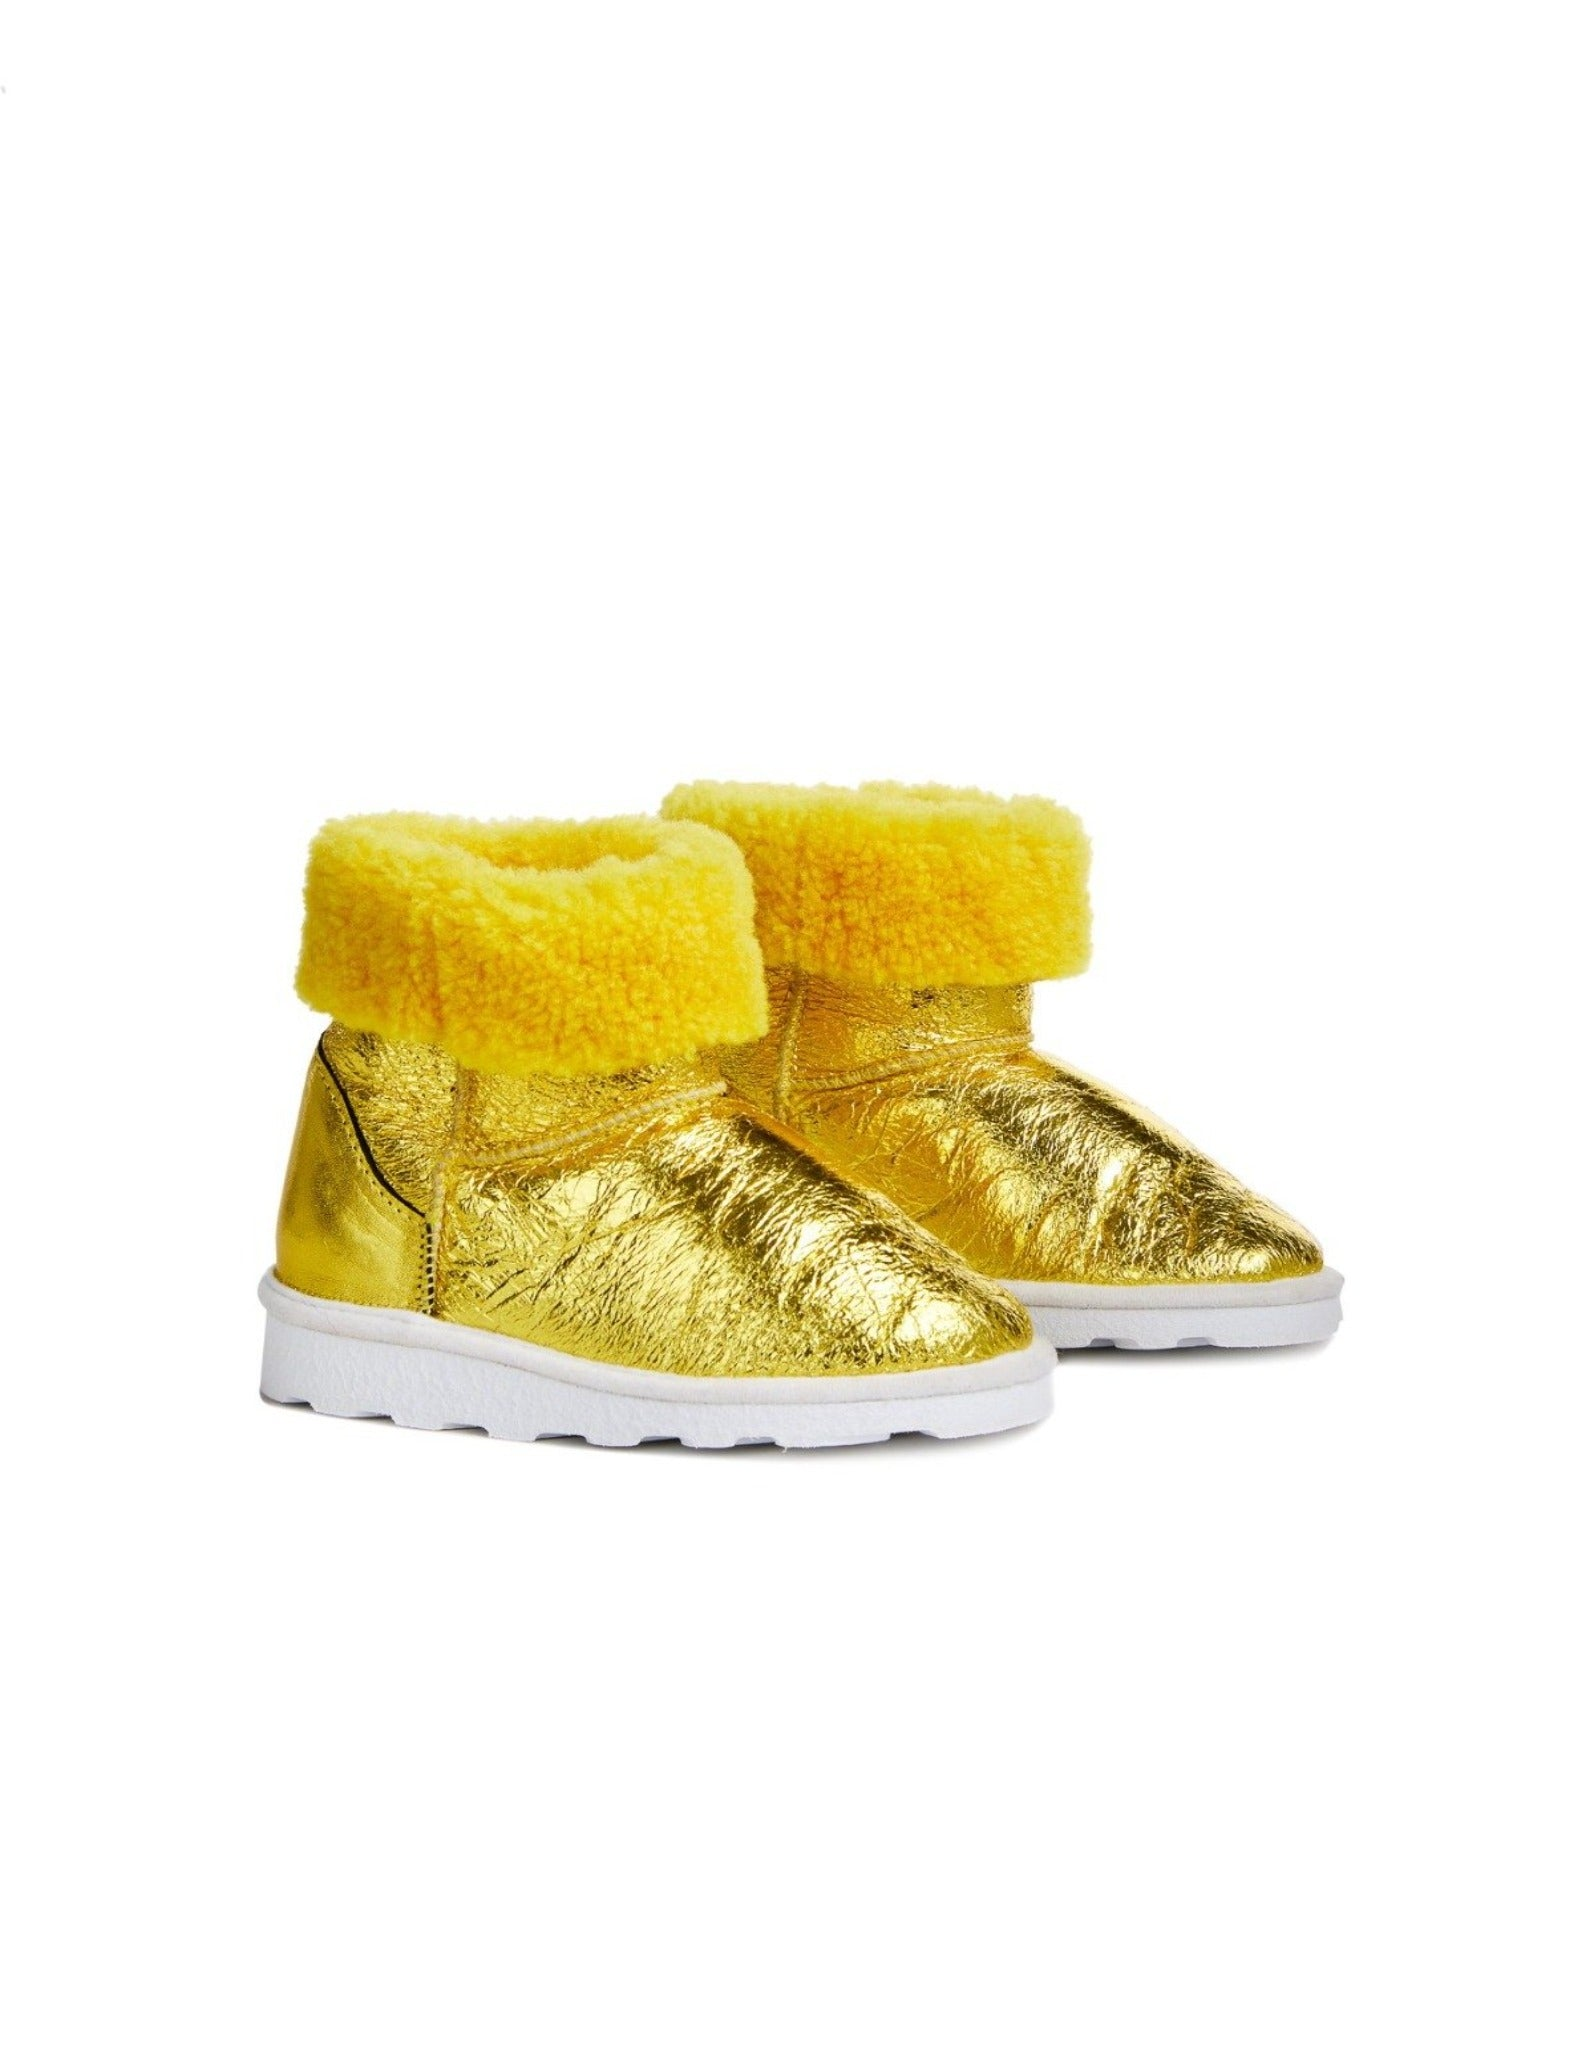 M'A KIDS LEATHER BOOTS IN YELLOW